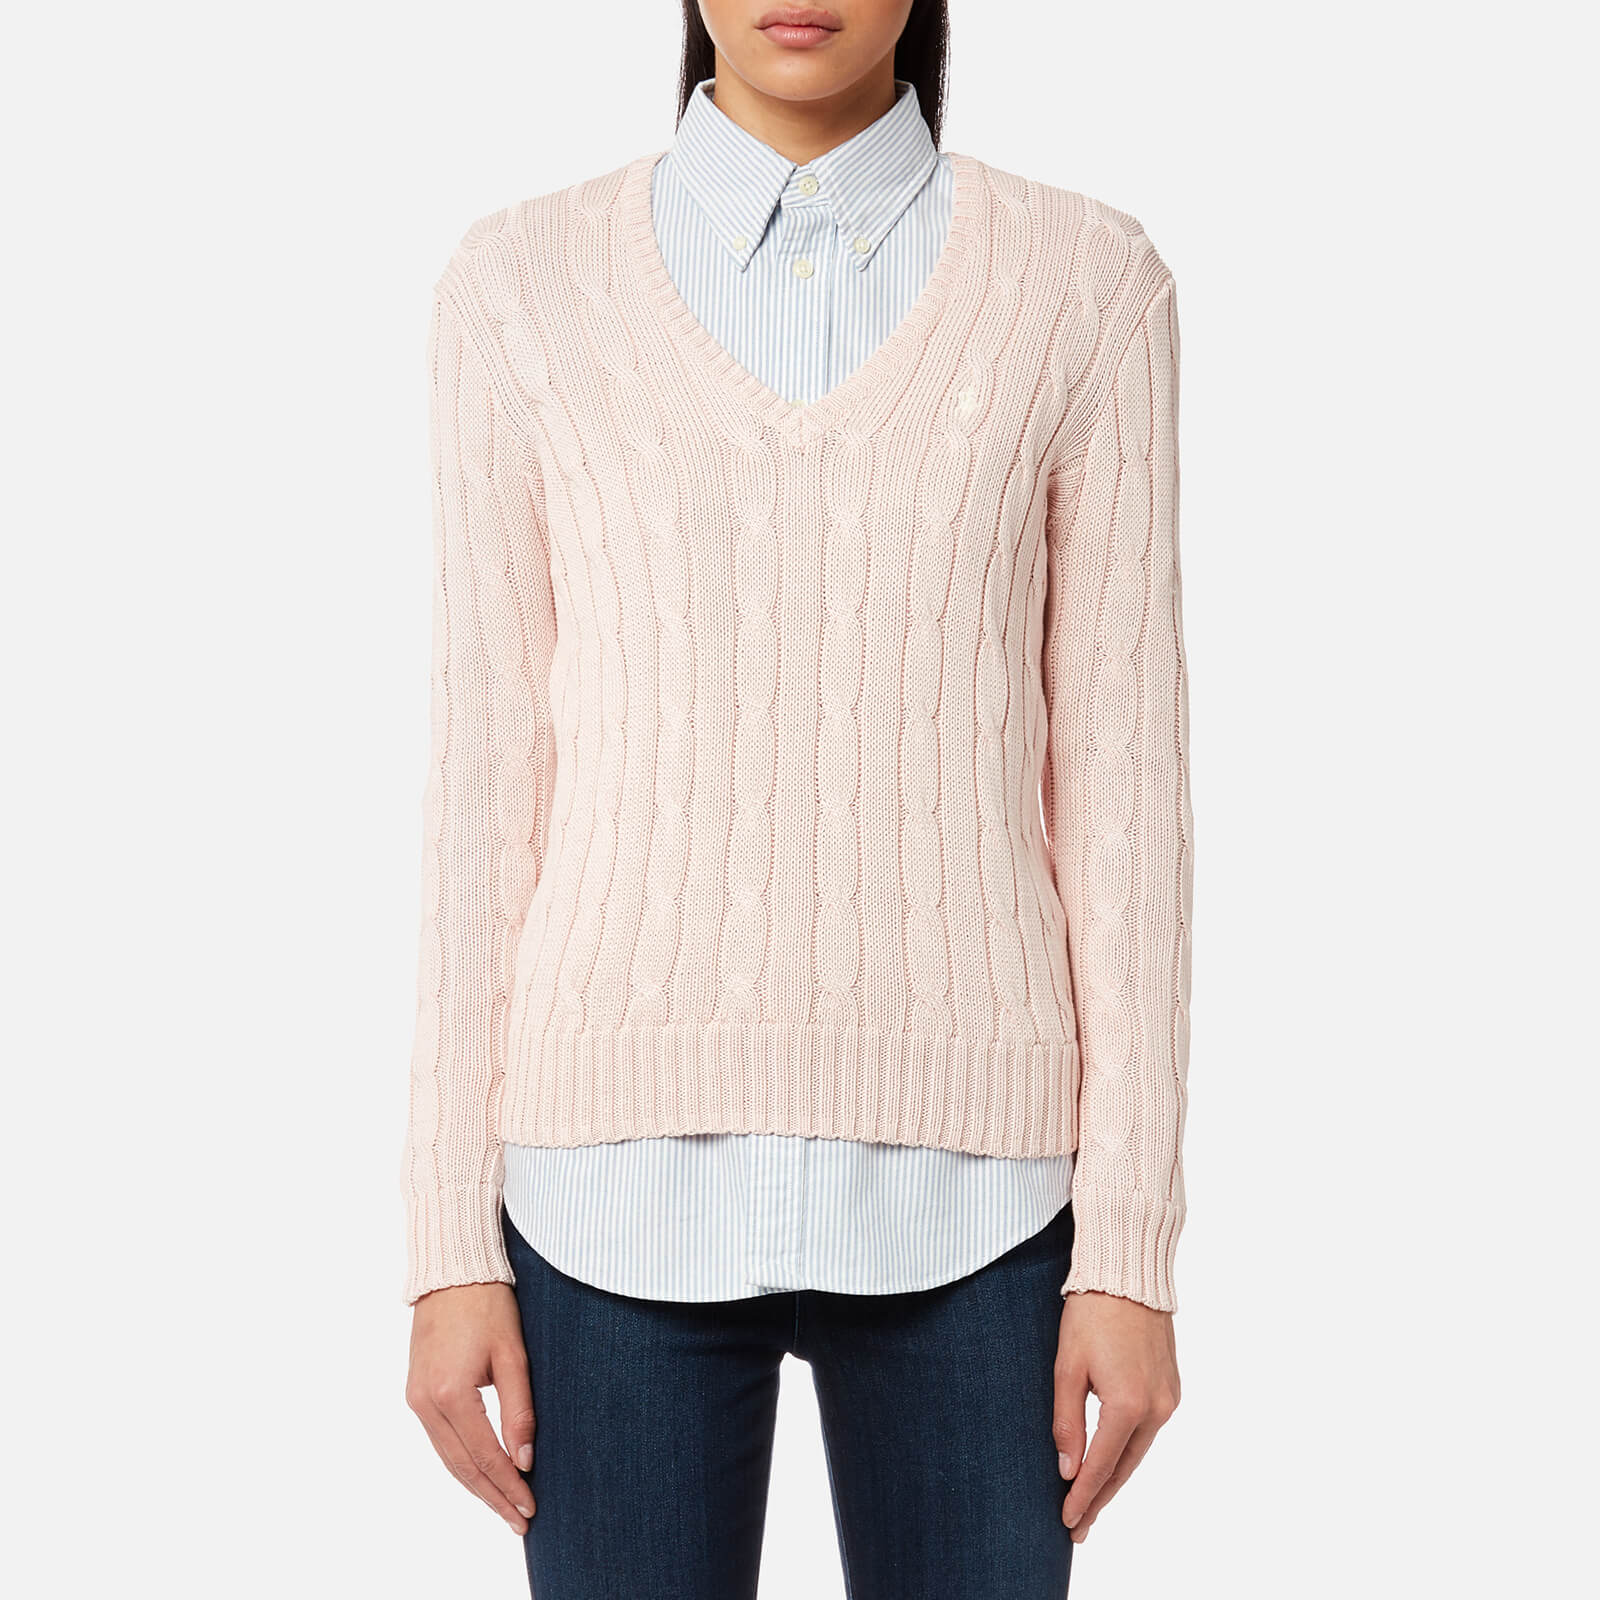 4c519d6a26ca2c Polo Ralph Lauren Women's Kimberly V Neck Jumper - Pale Pink - Free UK  Delivery over £50